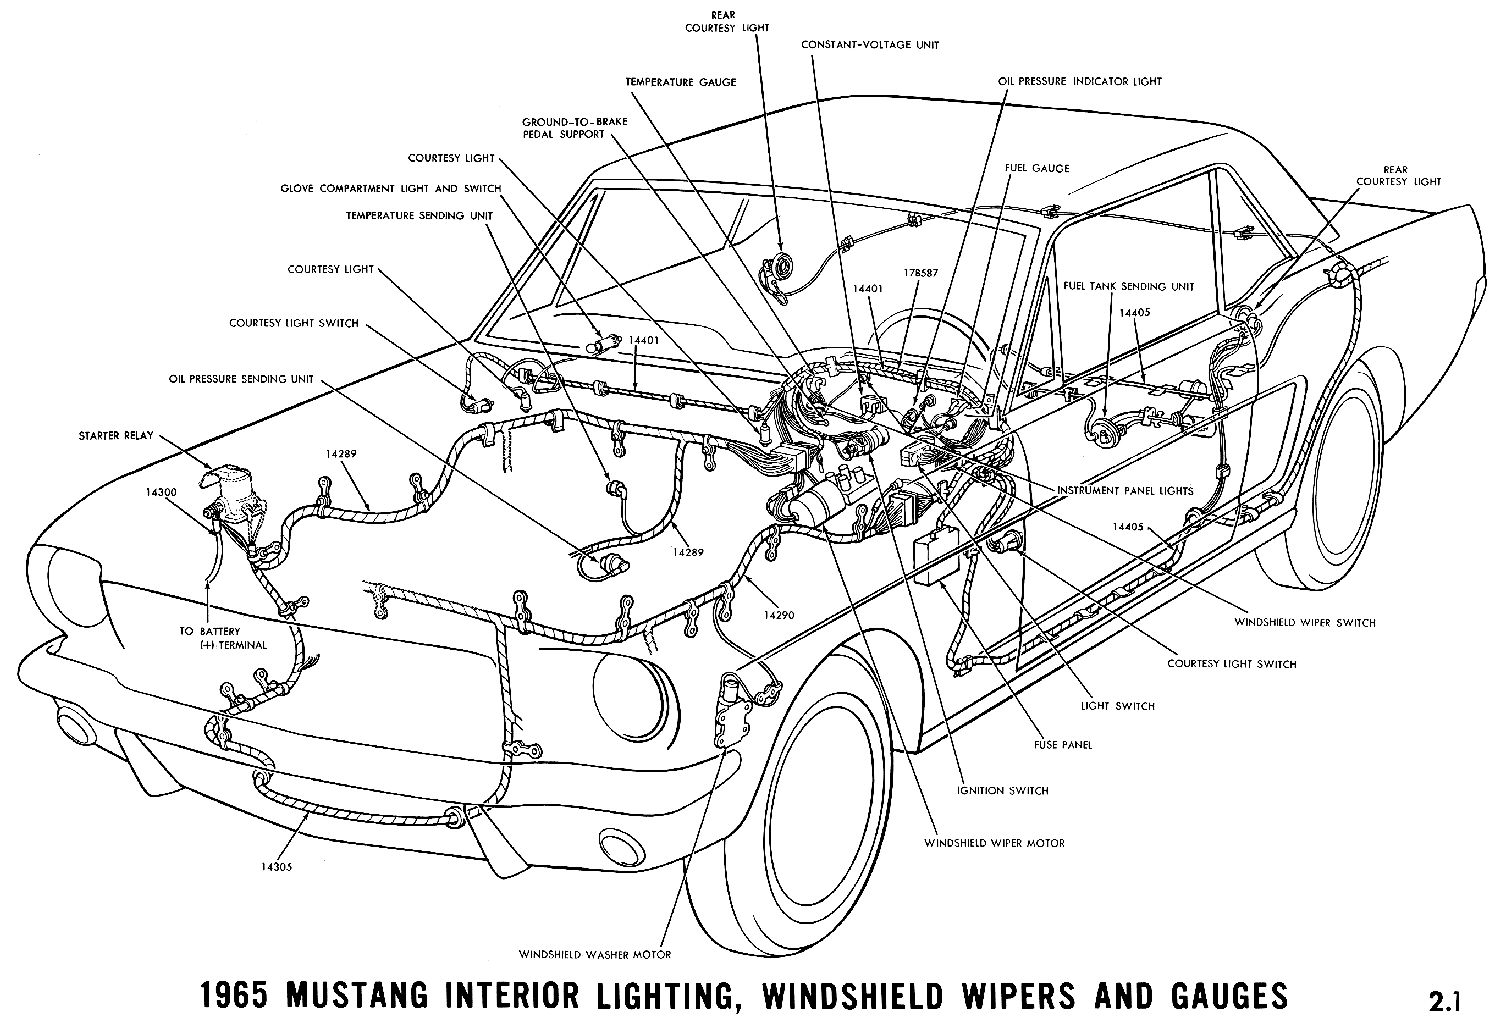 1965 Mustang Under Dash Wiring Diagram Just Data 67 Corvette Headlight Motor Diagrams Average Joe Restoration Alternator Interior Lights